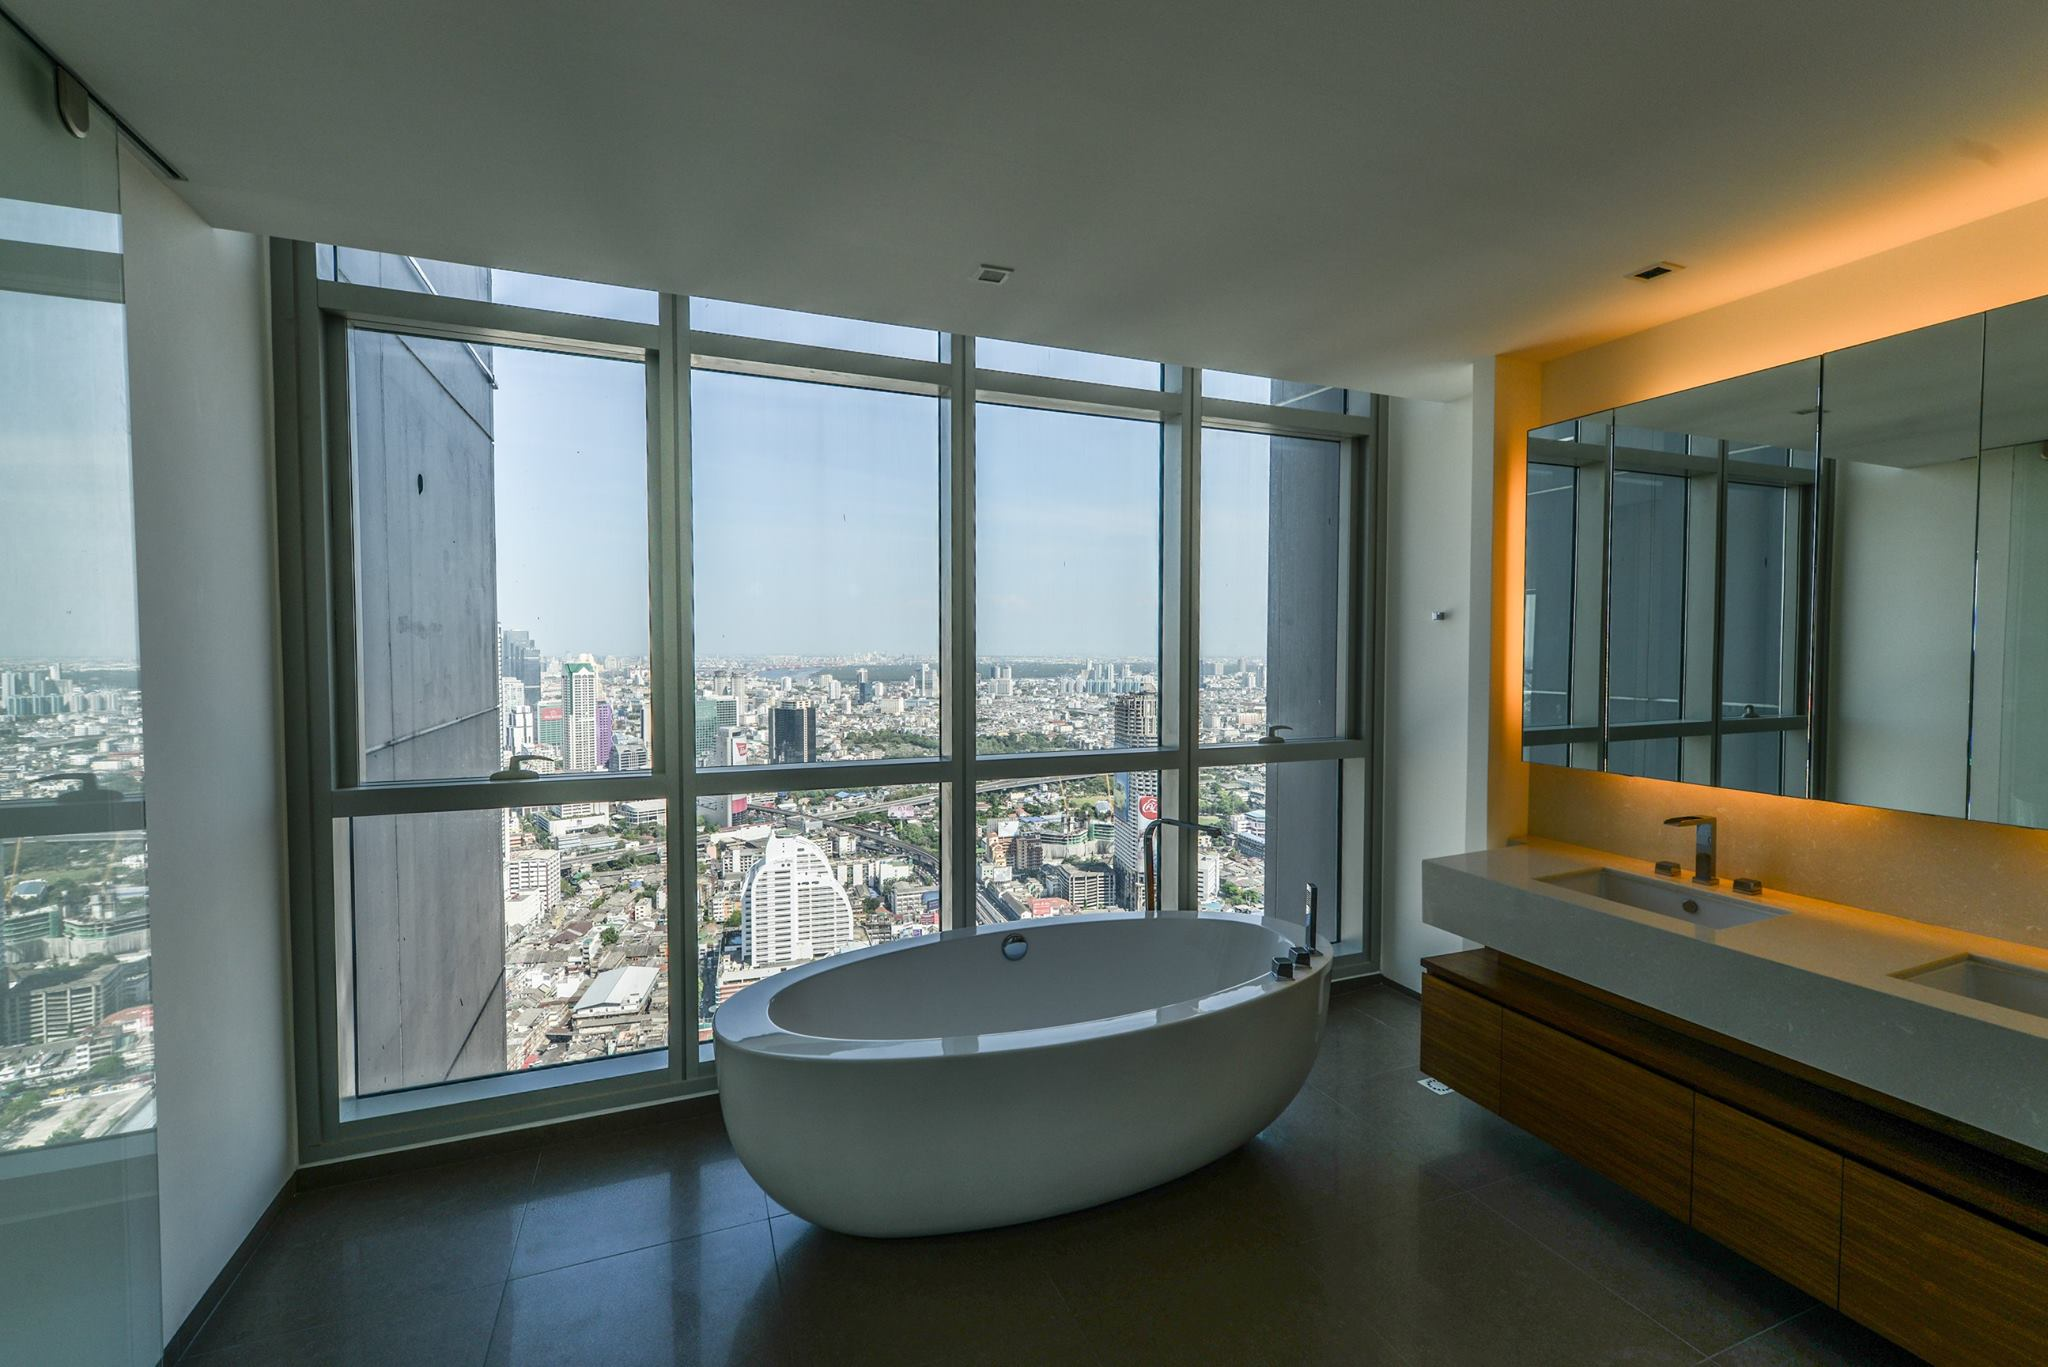 VisionQuest Thailand Property Agency's The River Penthouse 942sq.m spectacular 180 degrees river and city views 9